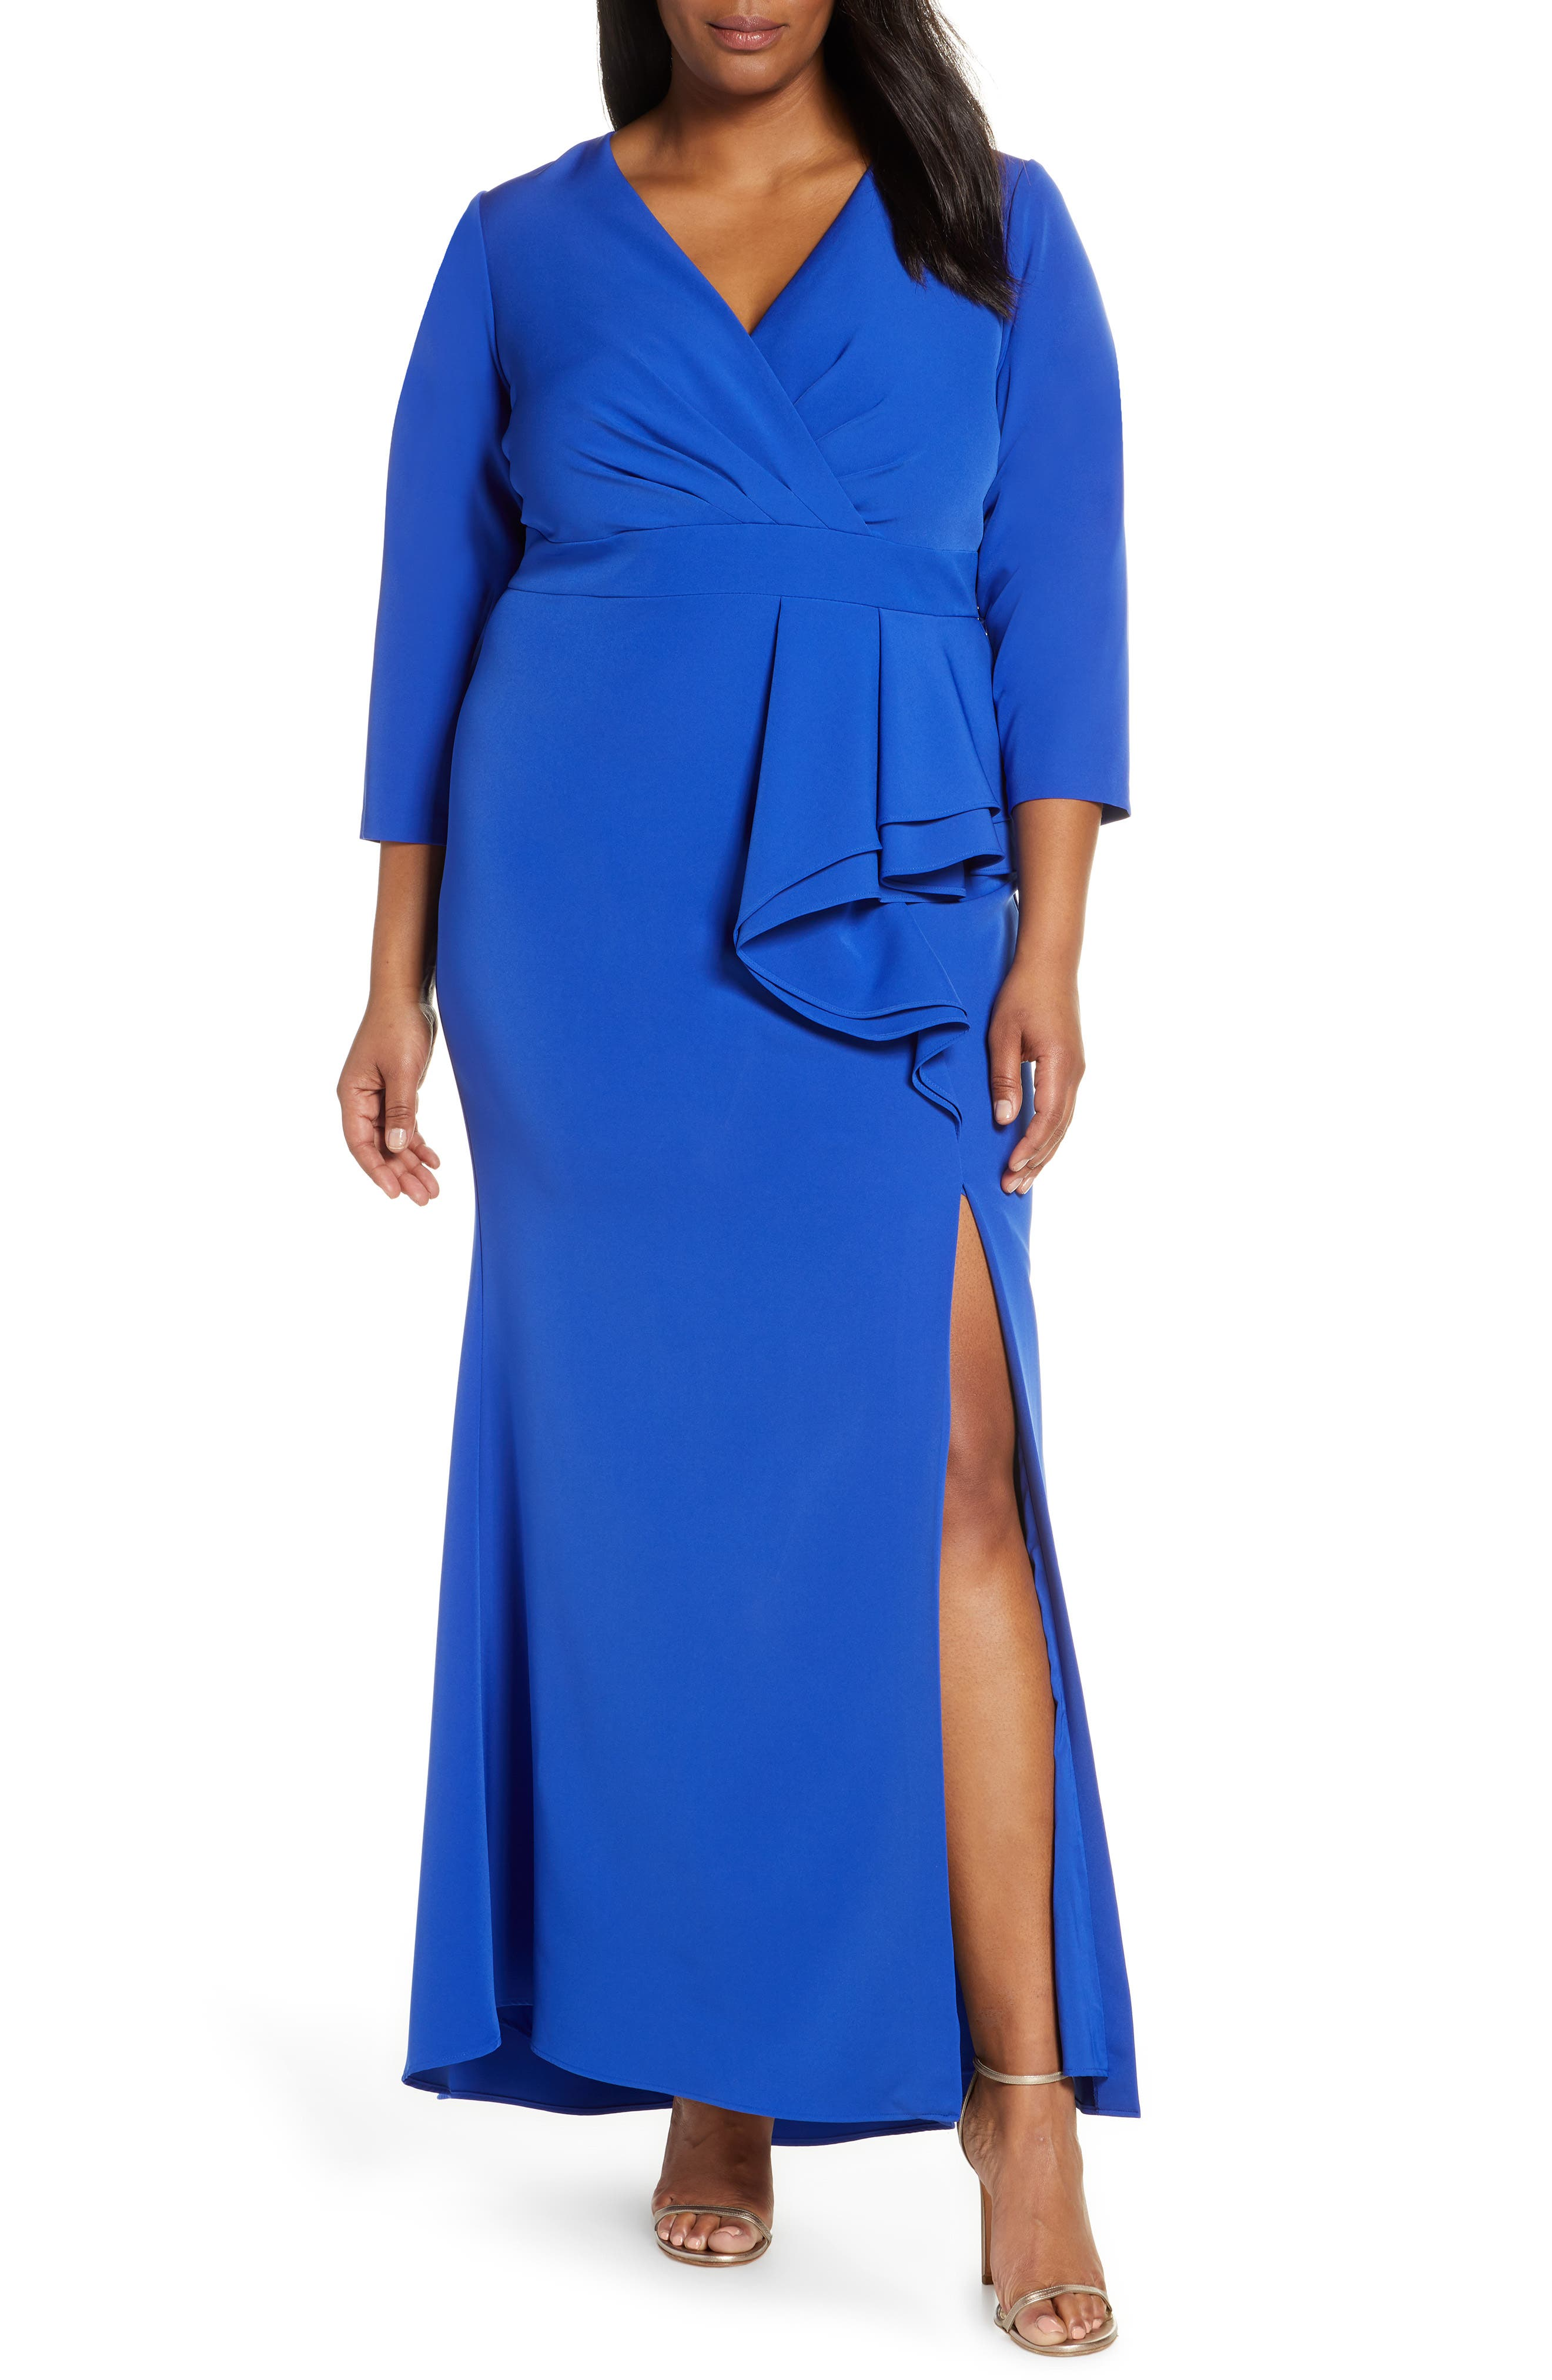 Plus Size Eliza J Side Ruffle Faux Wrap Gown, Blue